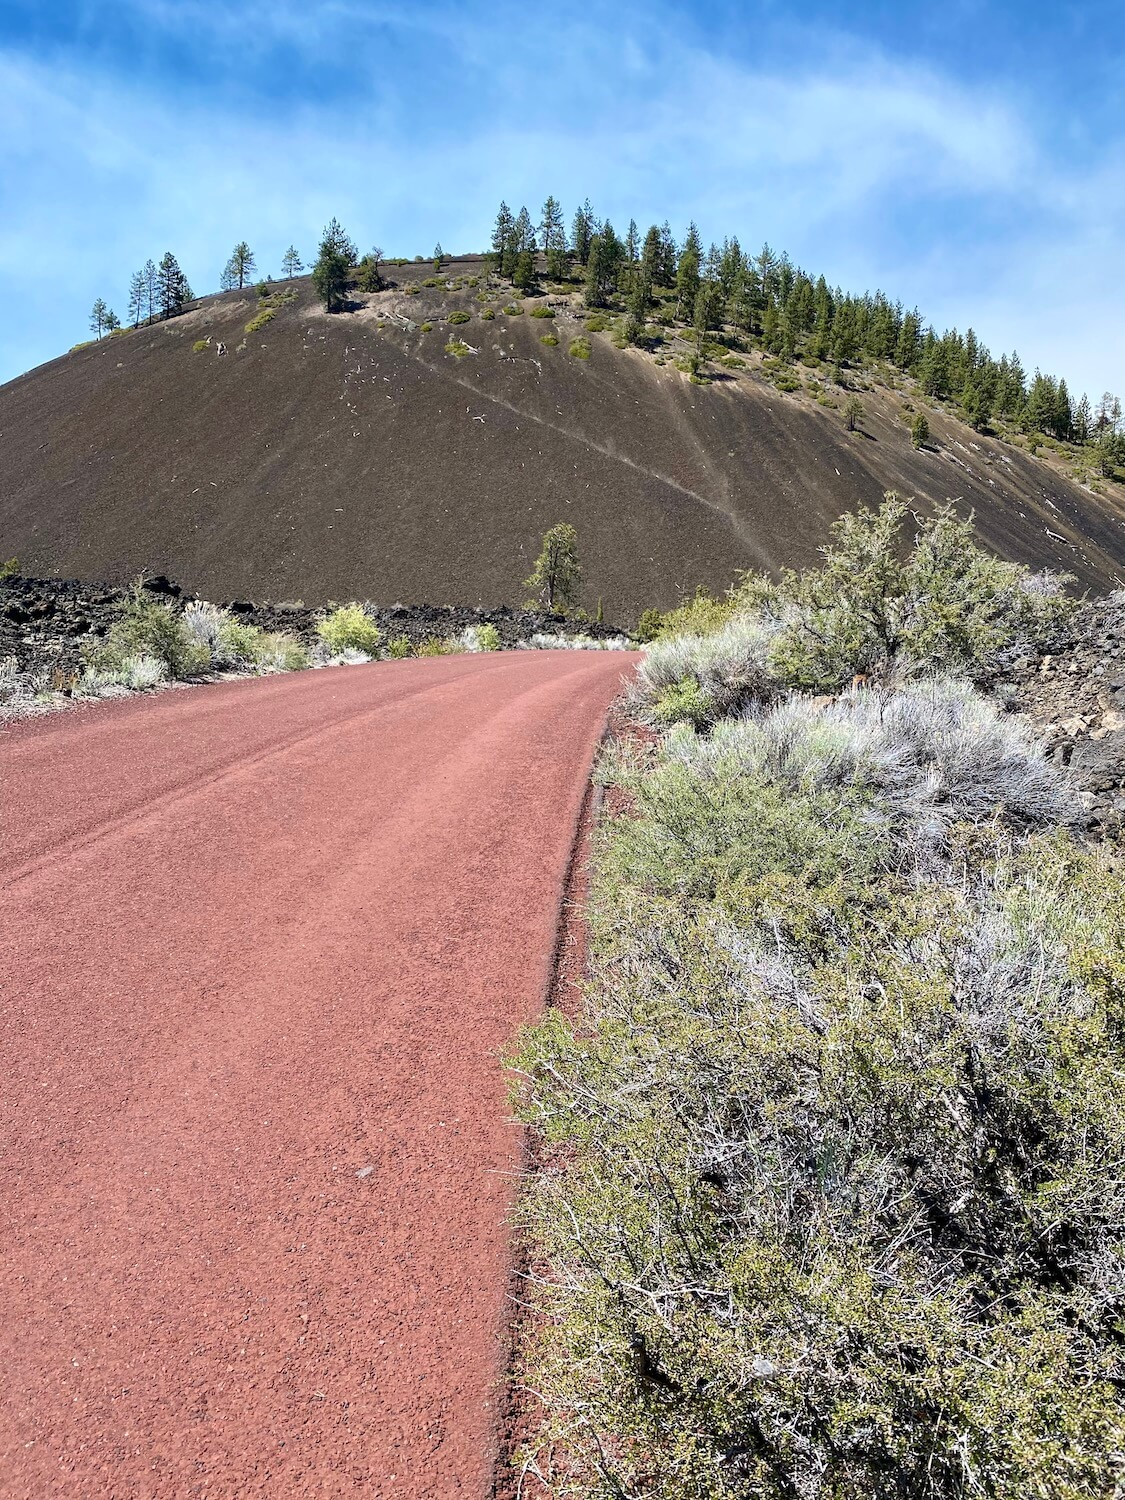 The red paved roadway leading up to the Lava Butte volcano near Bend Oregon is a great thing to do to get out in nature.  The mound is made up of black lava cinders with a number of pine trees growing around the rim.